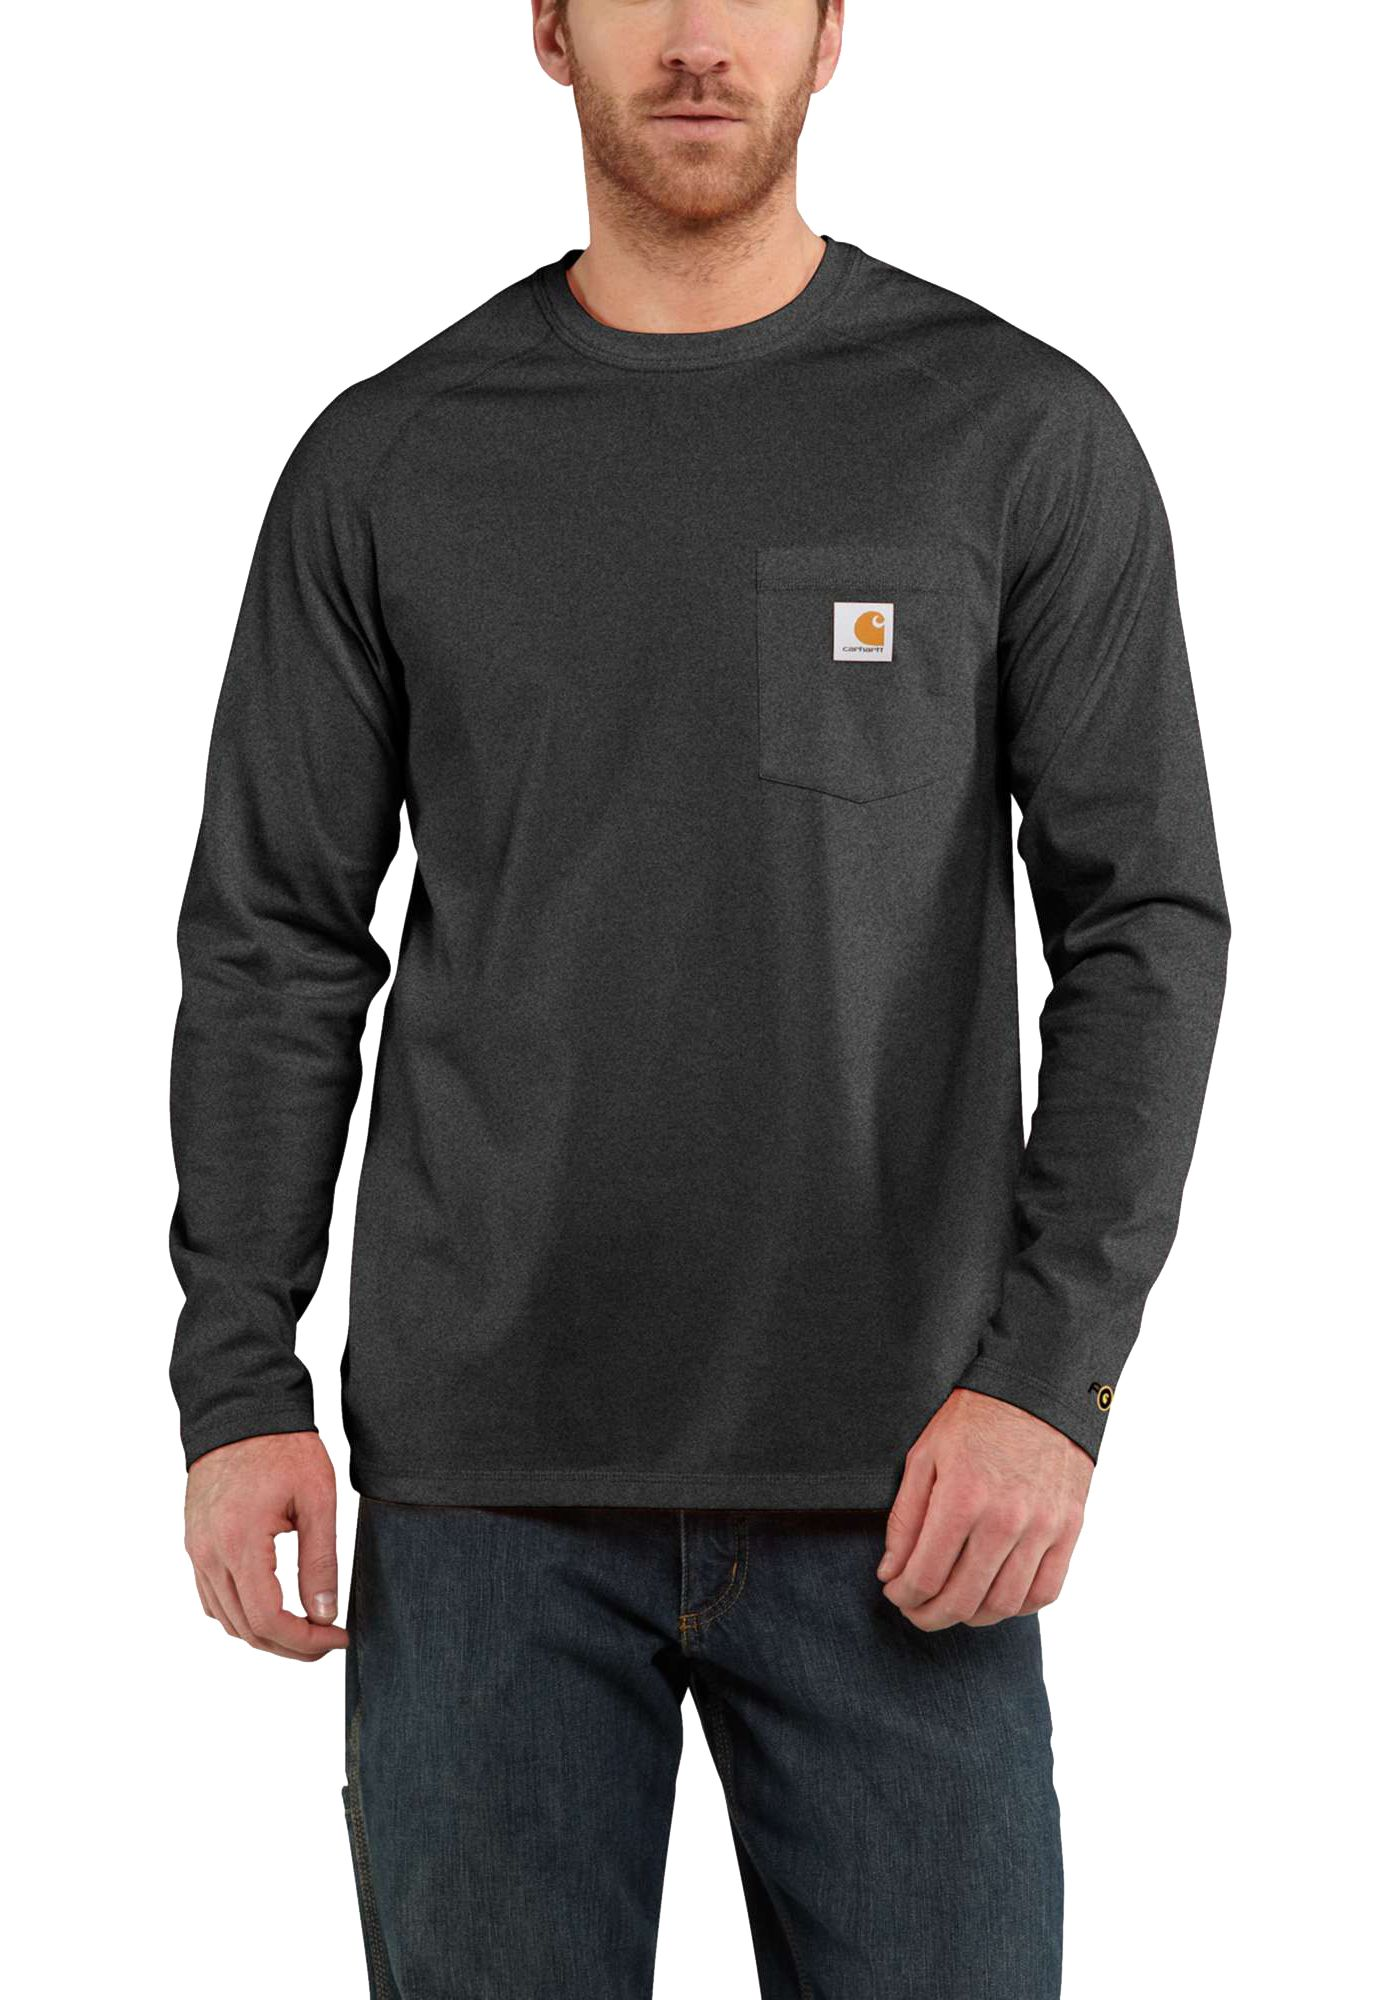 Carhartt Men's Force Cotton Delmont Long Sleeve T-Shirt